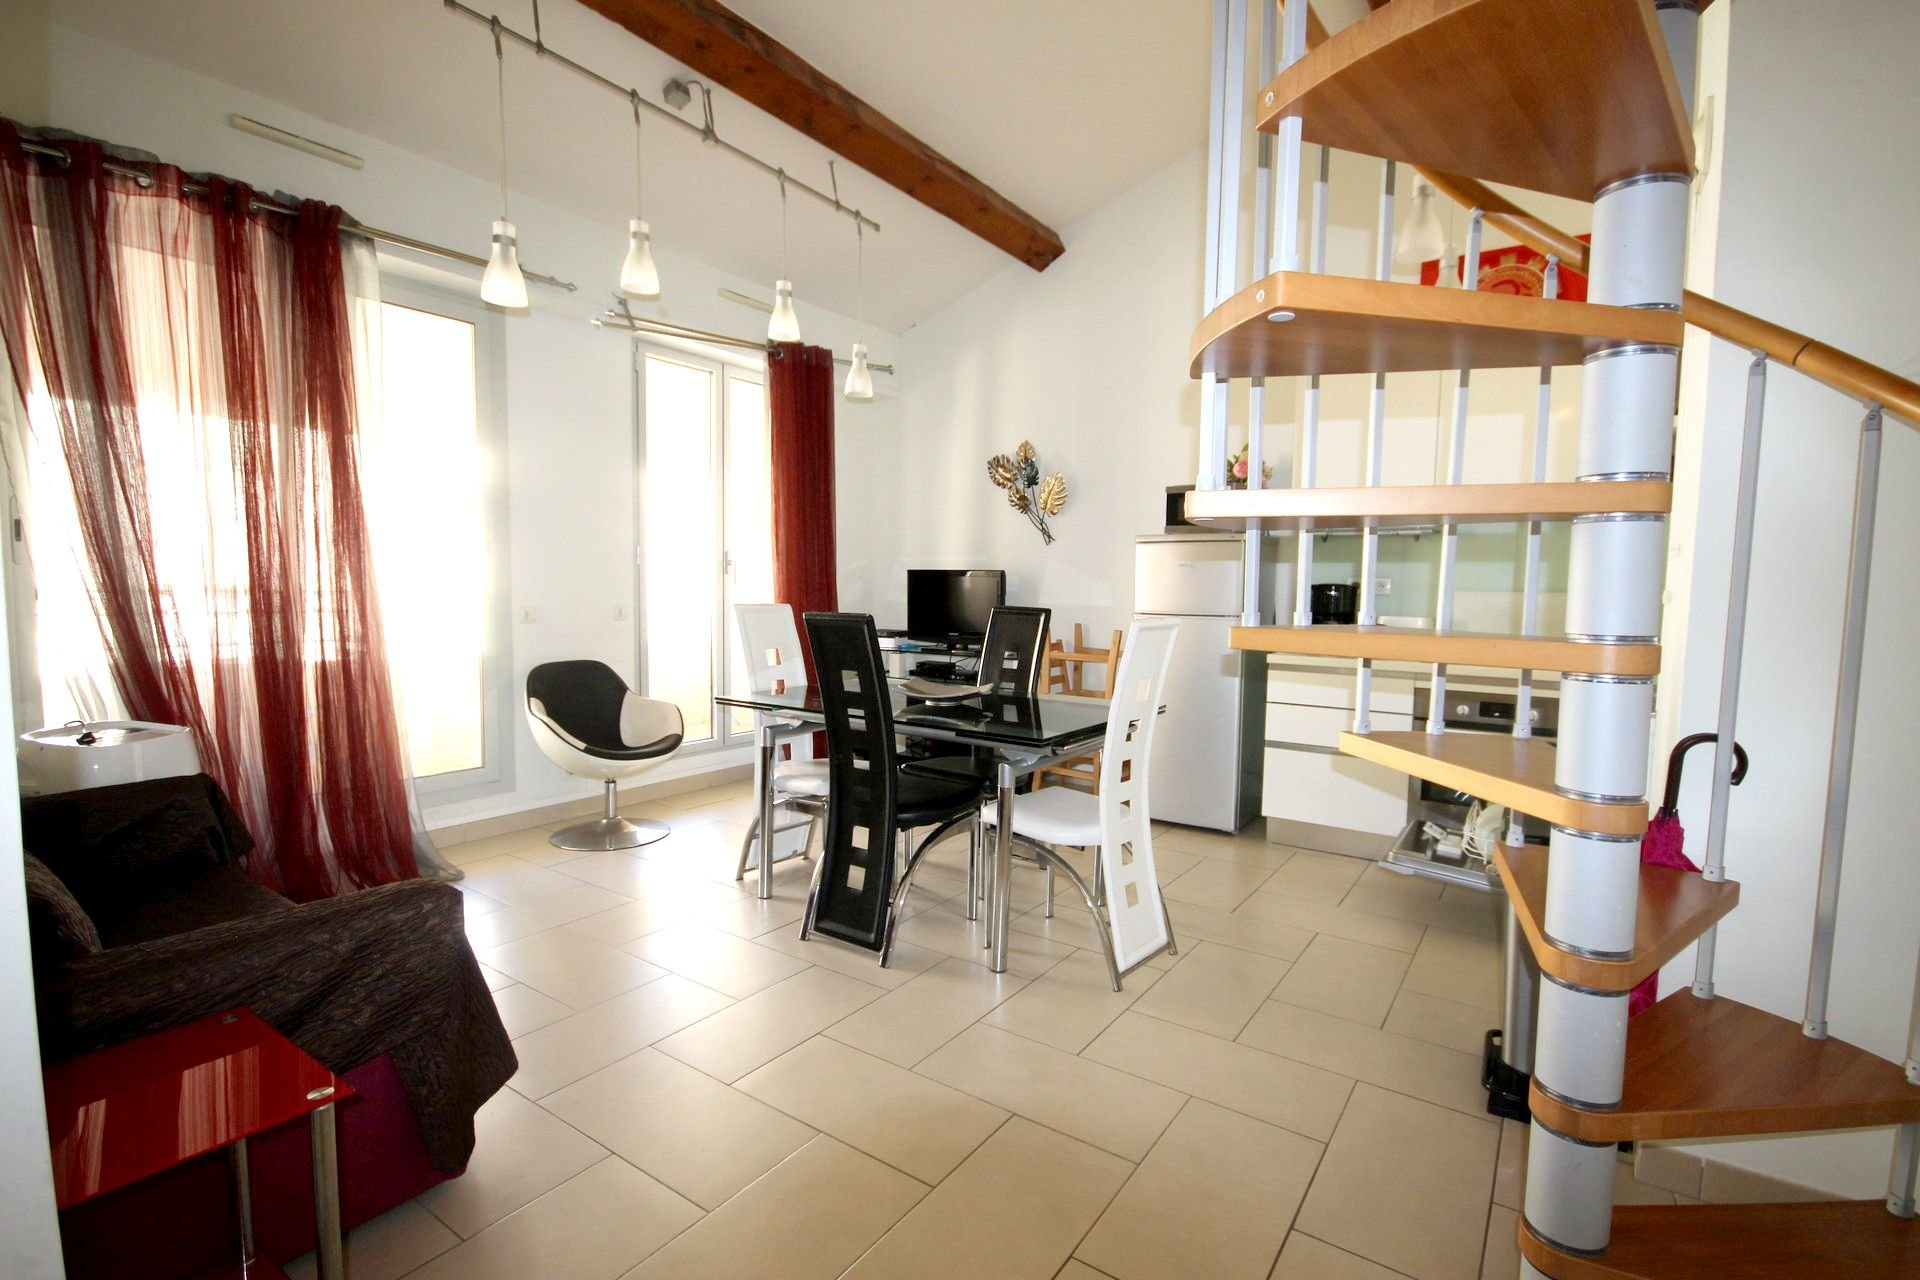 CANNES Center near beaches nice 3 bedrooms for sale